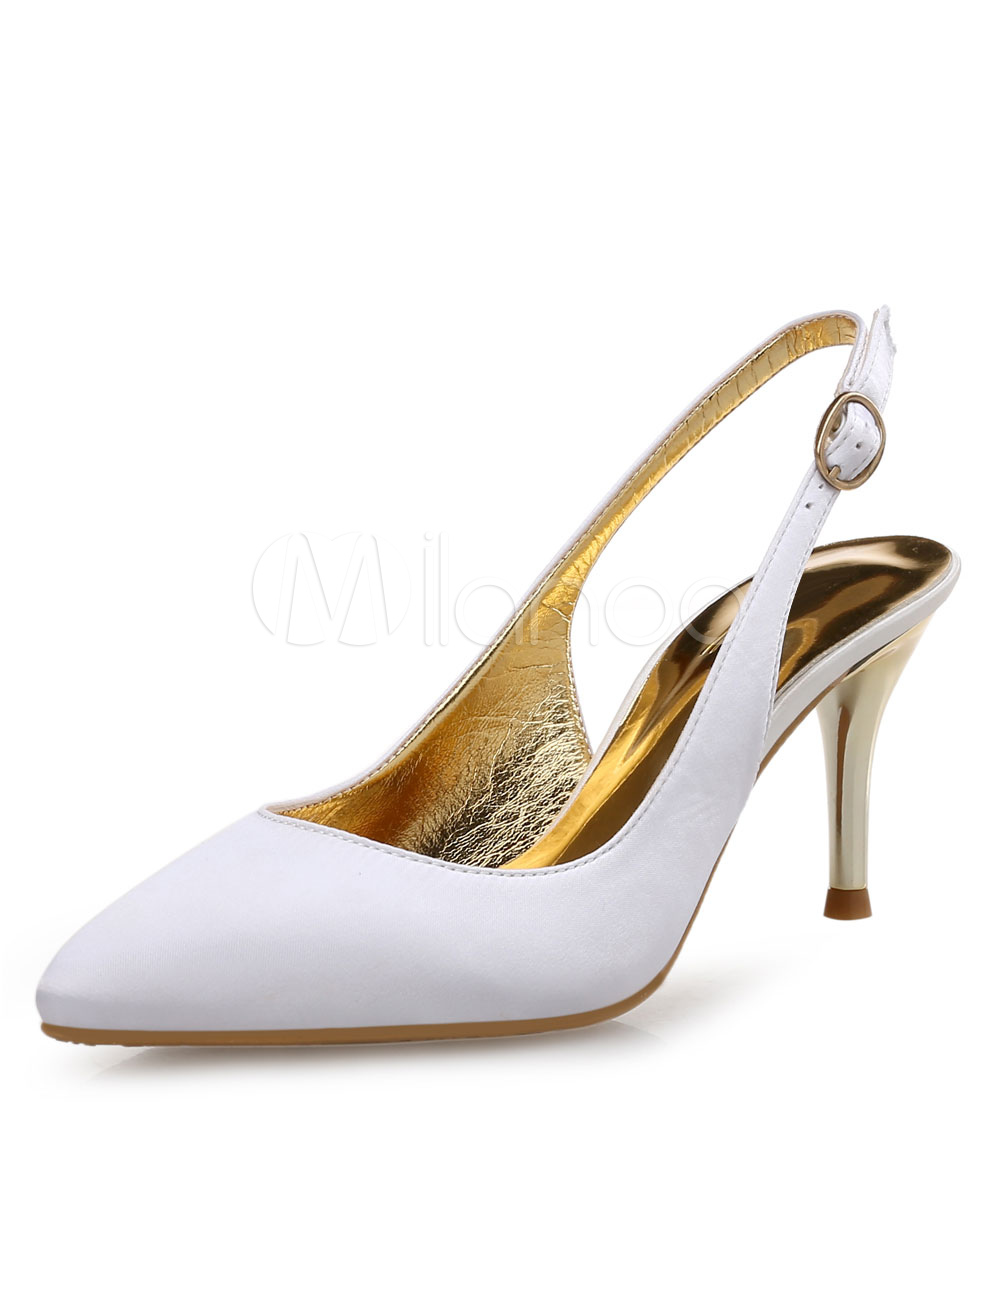 Buy Pointed Toe Pumps Satin Women's Slingback Stiletto High Heel Shoes for $29.99 in Milanoo store